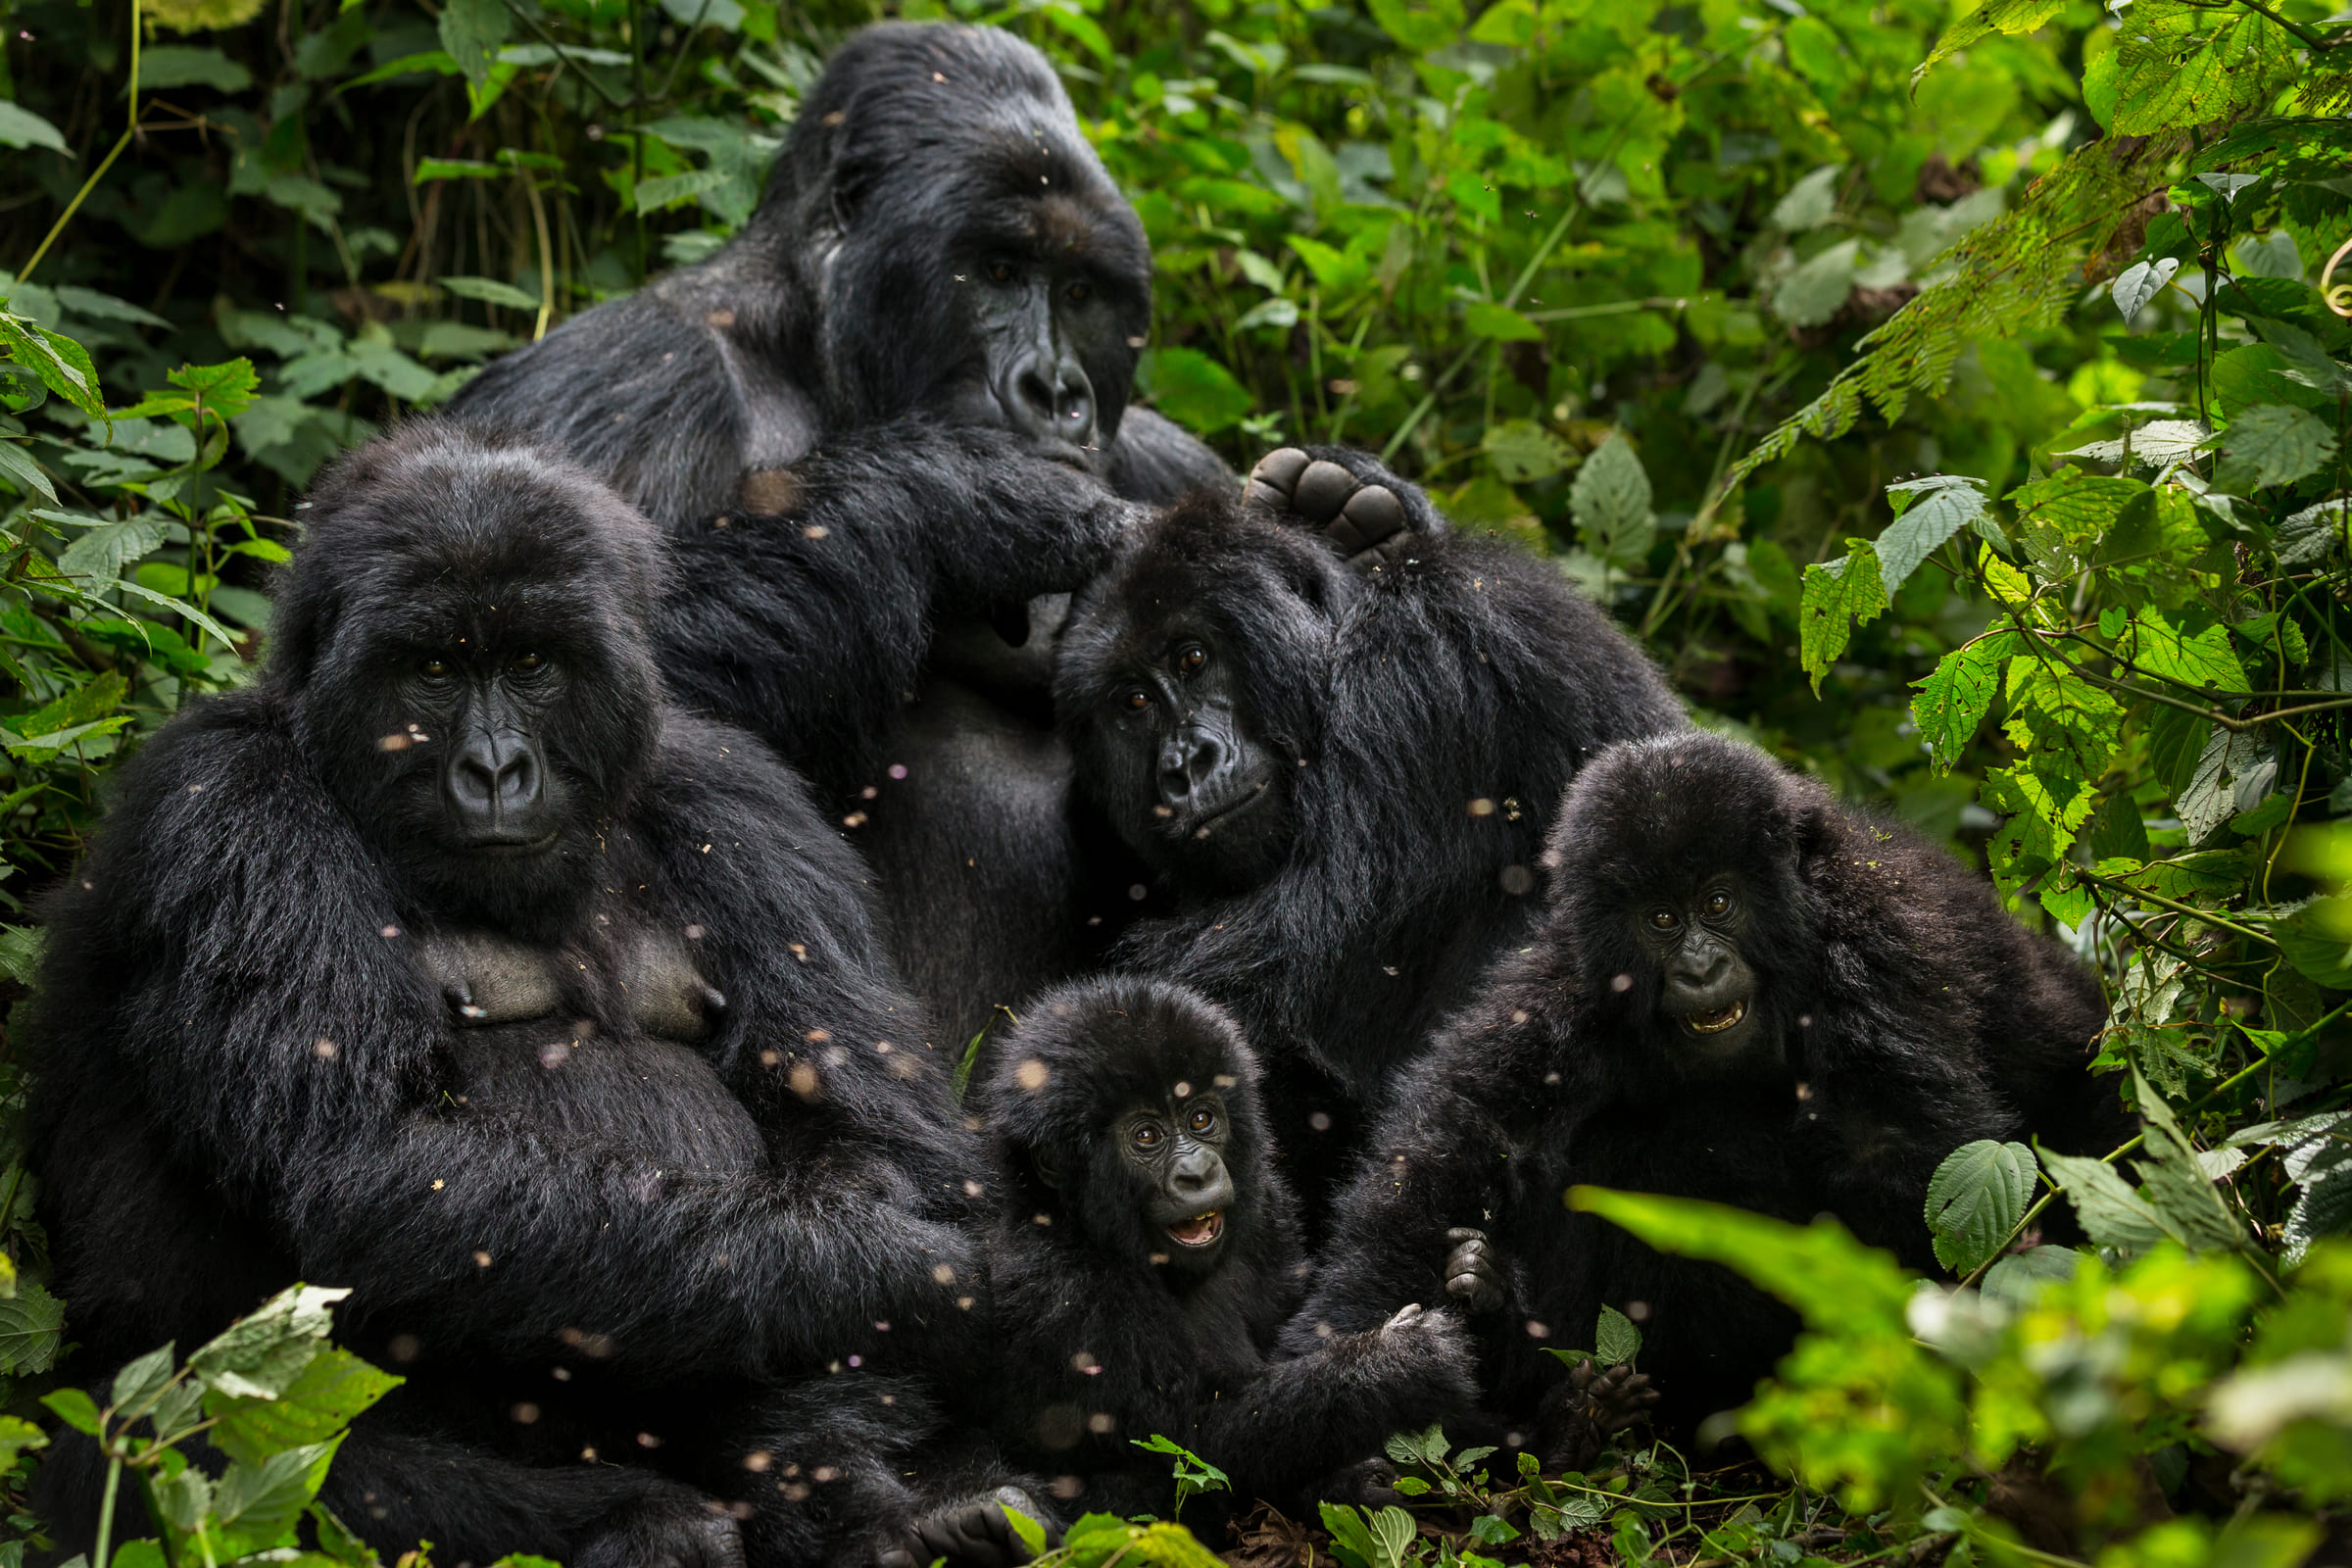 Gorillafamilie im Virunga-Nationalpark